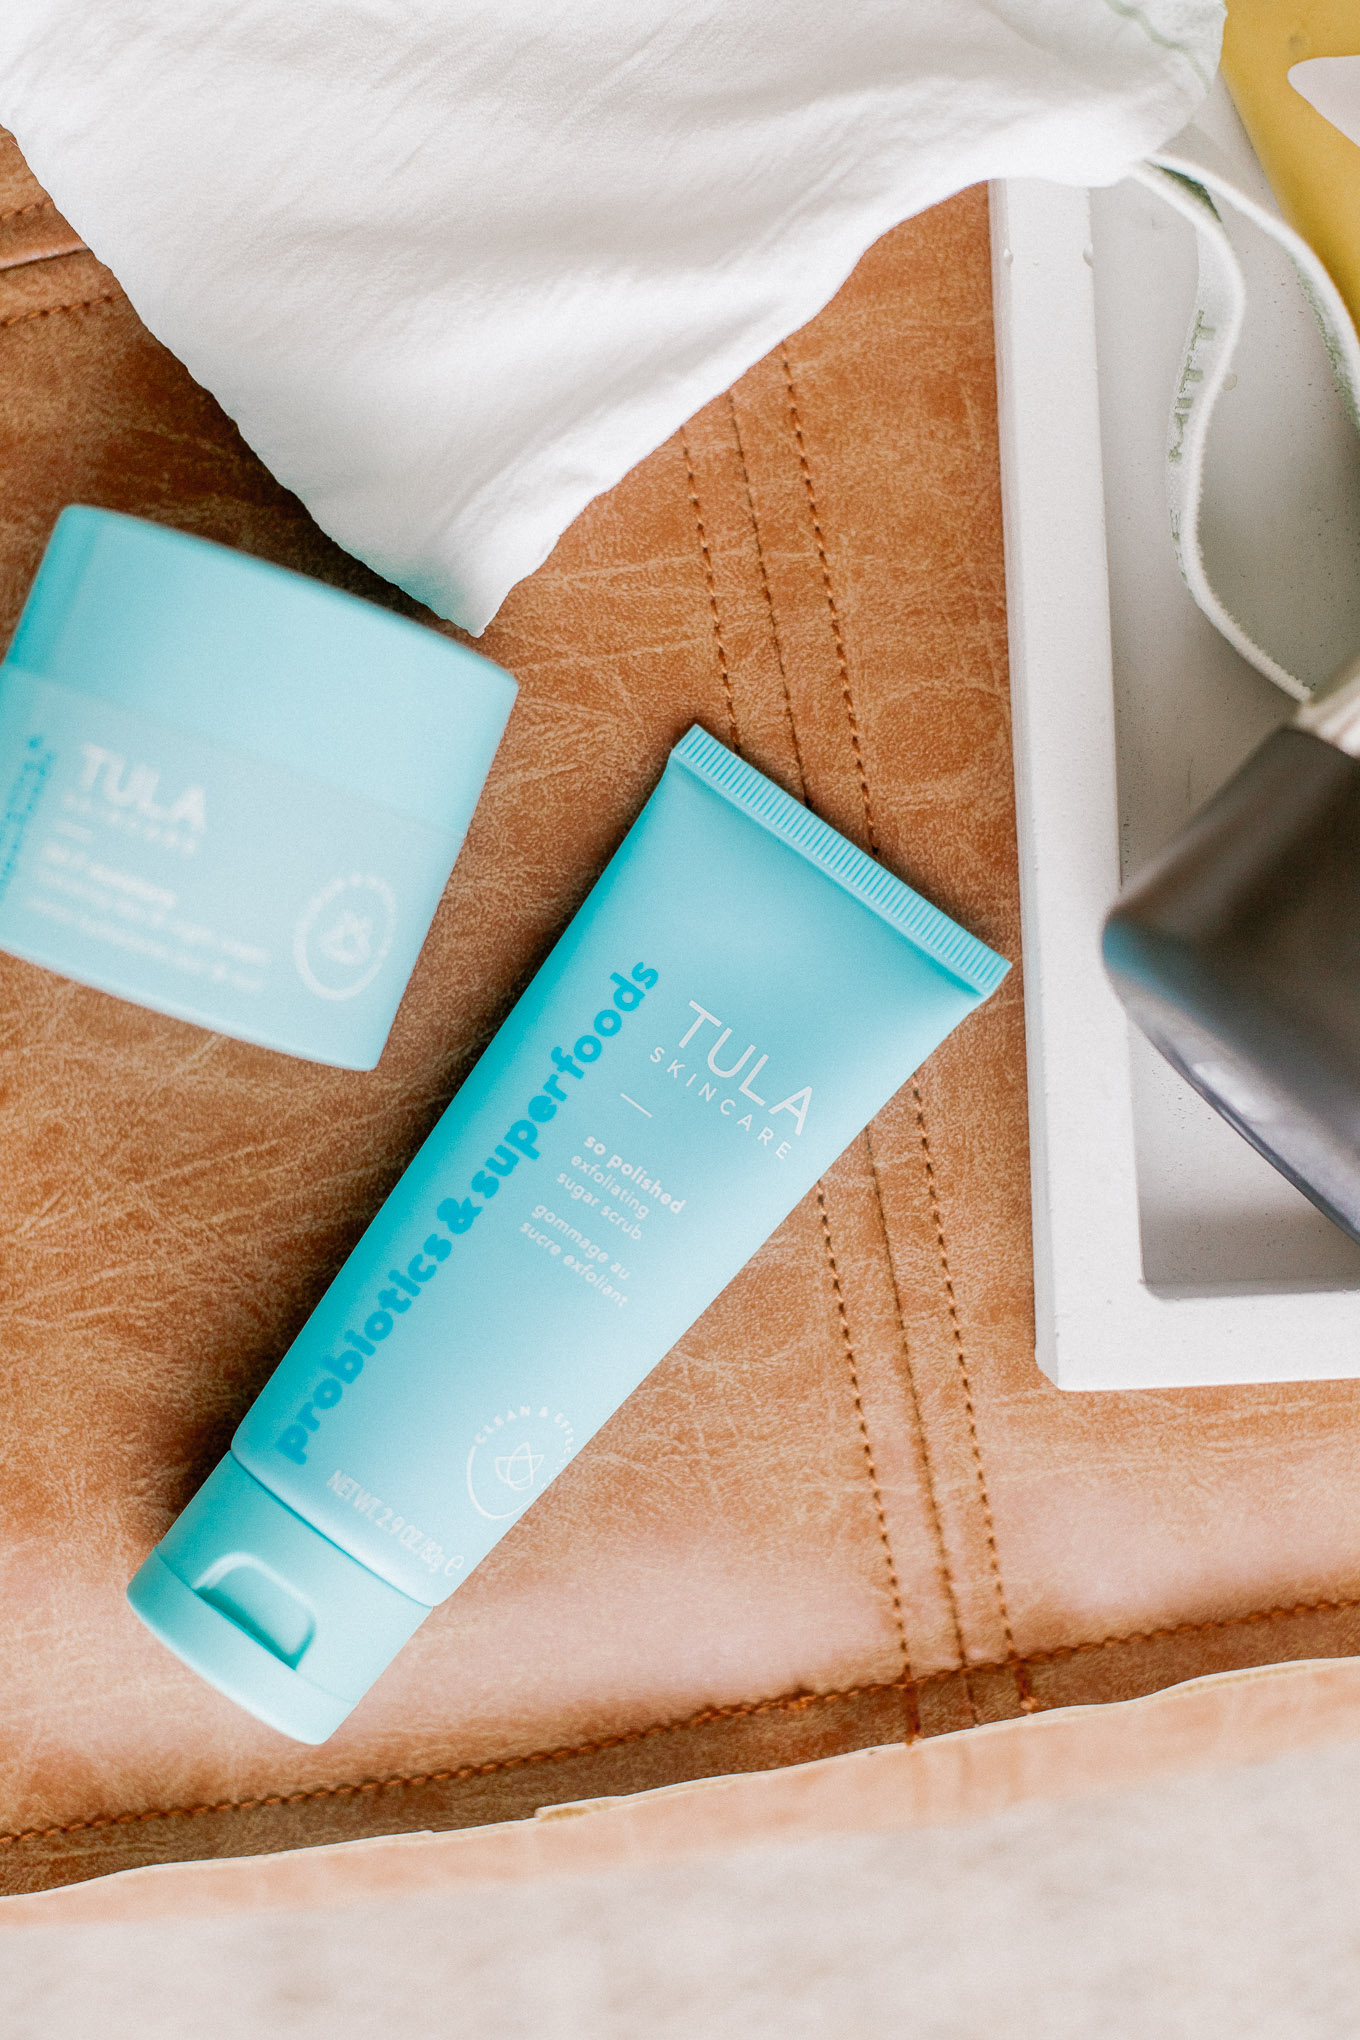 Gentle Exfoliator | Clean Beauty Products | TULA Review | Louella Reese